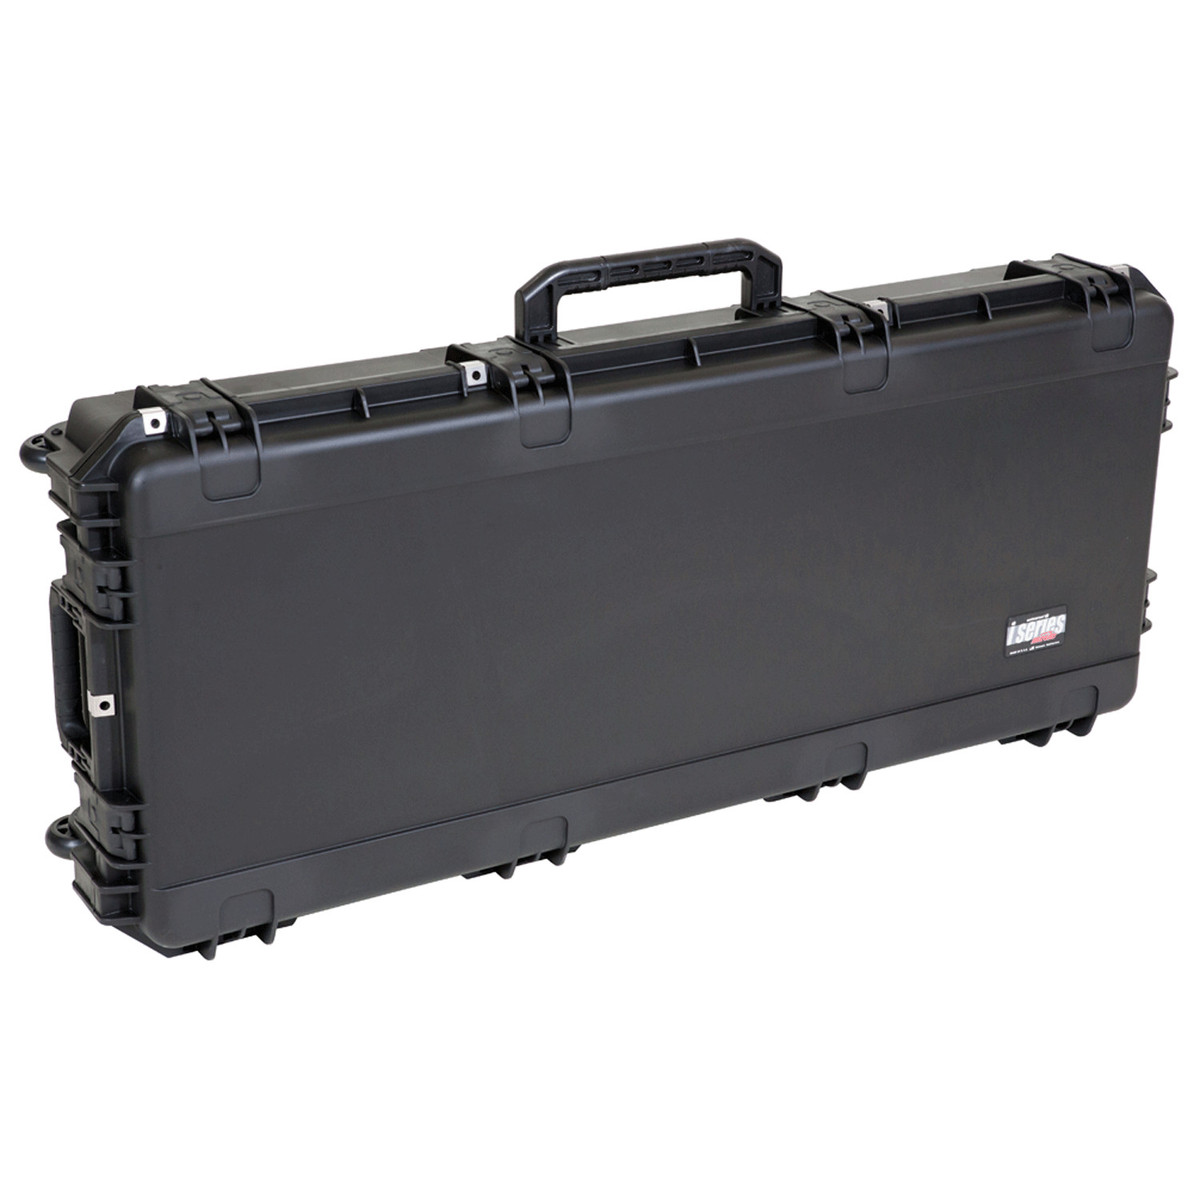 Guitar Cases With Wheels : skb iseries injection moulded 335 type guitar case w wheels at ~ Russianpoet.info Haus und Dekorationen